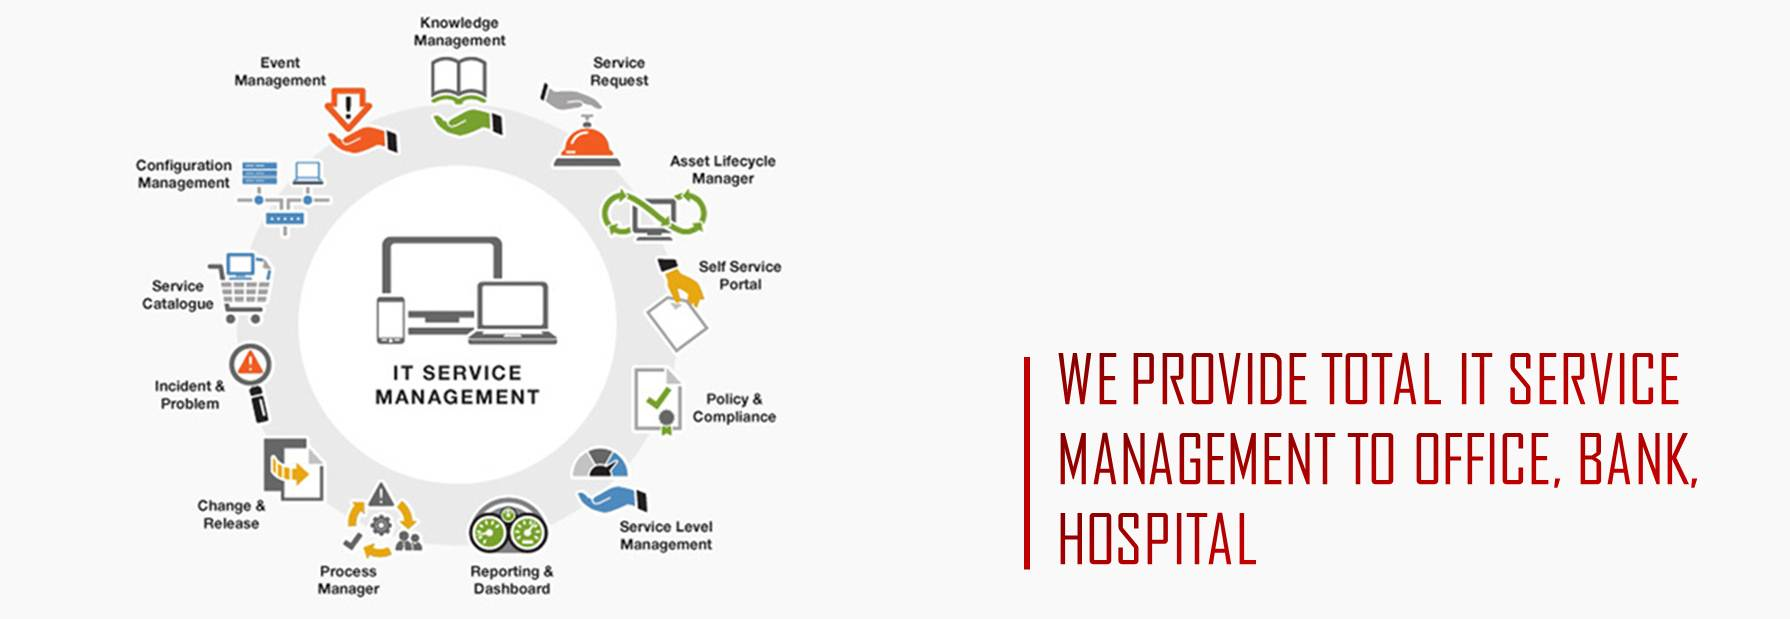 Best It Service Management And Solution Company In Dhaka. Mold Testing Las Vegas Ct Nurse Aide Registry. No Customer Service Telkomsel. Auto Insurance Companies New York. Christian Counseling Training Programs. Quickbooks Solutions Marketplace. San Francisco Attorneys Criminal Tax Attorney. Online College With No Application Fee. Medical Alert Vs Life Alert St John Dental